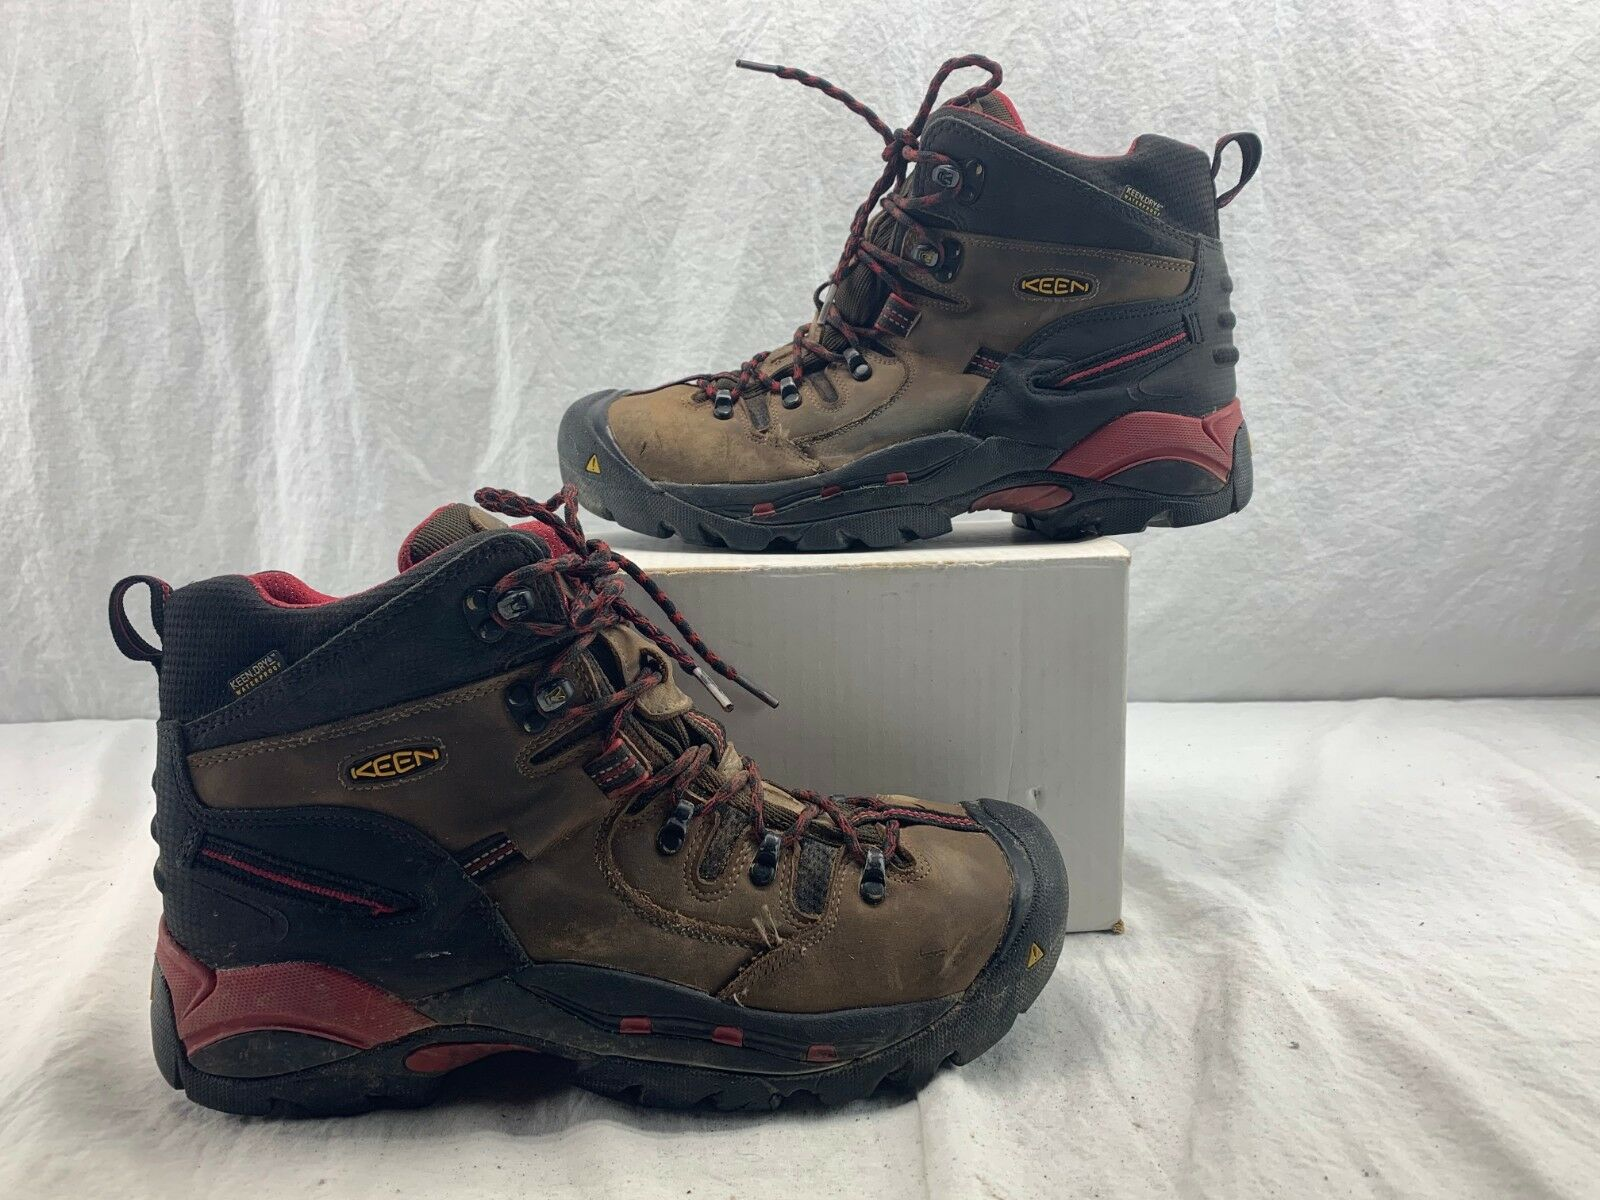 Keen 1007024 1007024 1007024 Uomo Pittsburgh Dry-lex Footwear Lining 6  avvio Bison Dimensione 11 D 189afc